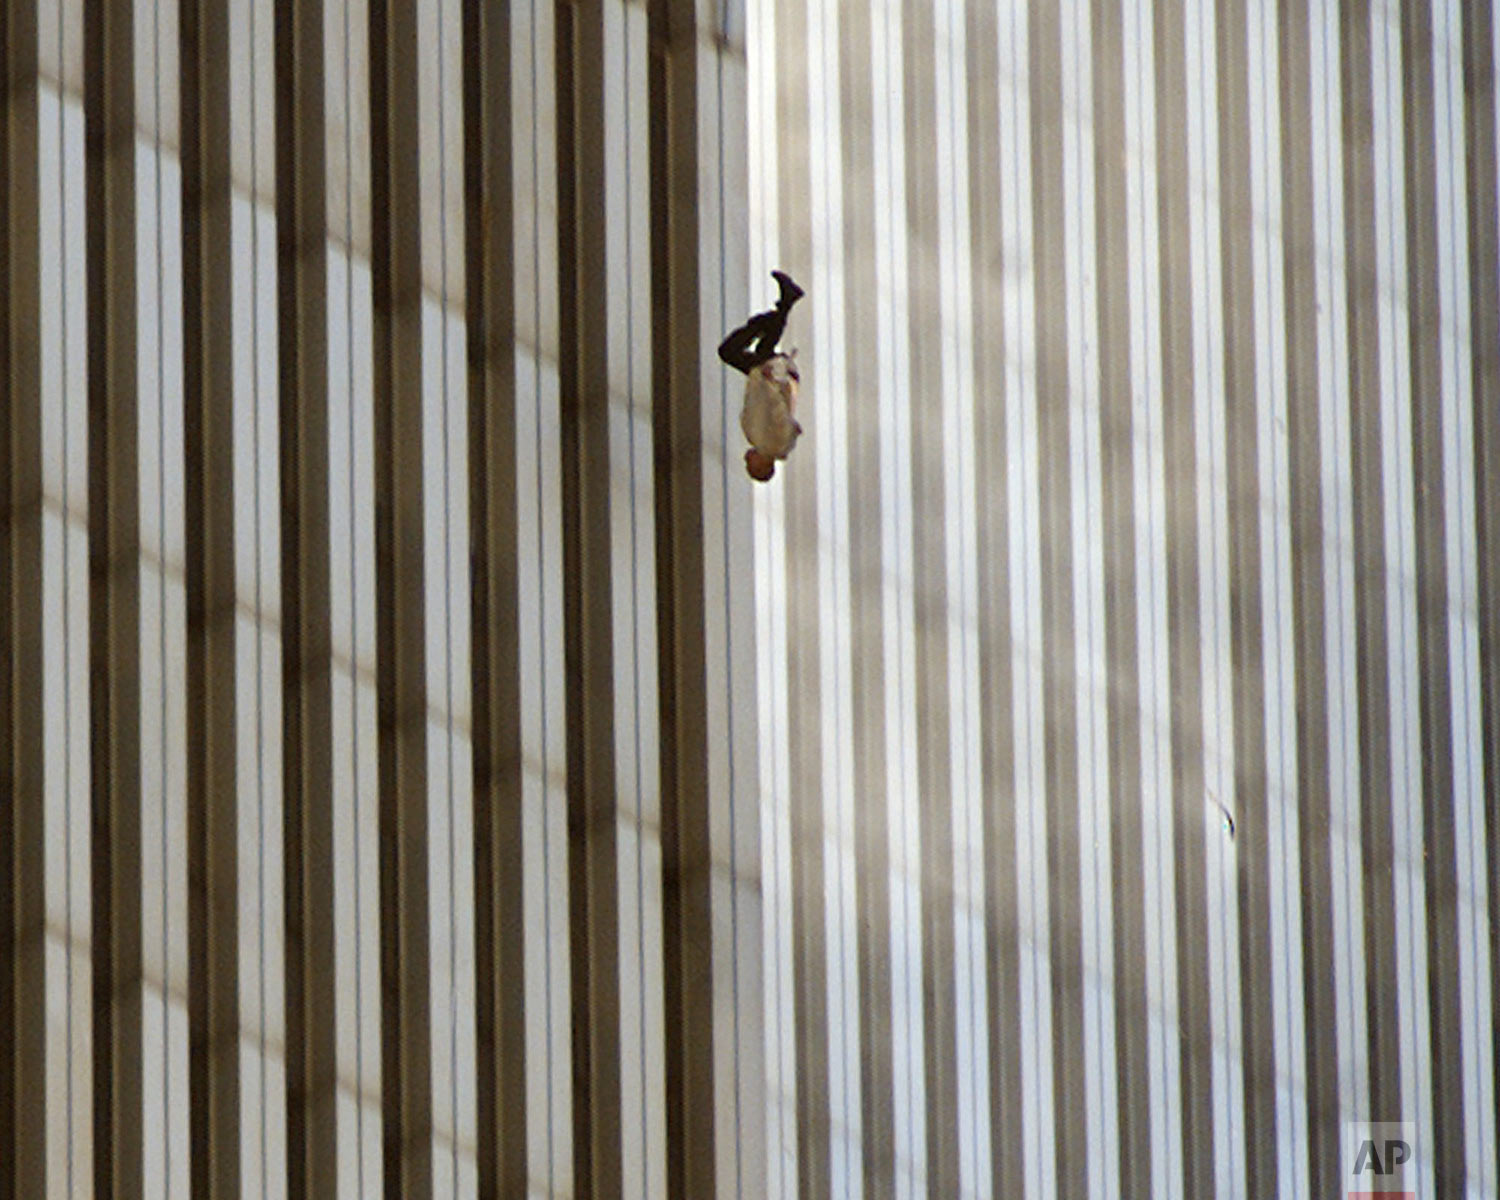 A person falls from the north tower of New York's World Trade Center in this Sept. 11, 2001 photo, after terrorists crashed two hijacked airliners into the World Trade Center and brought down the twin 110-story towers. (AP Photo/Richard Drew)